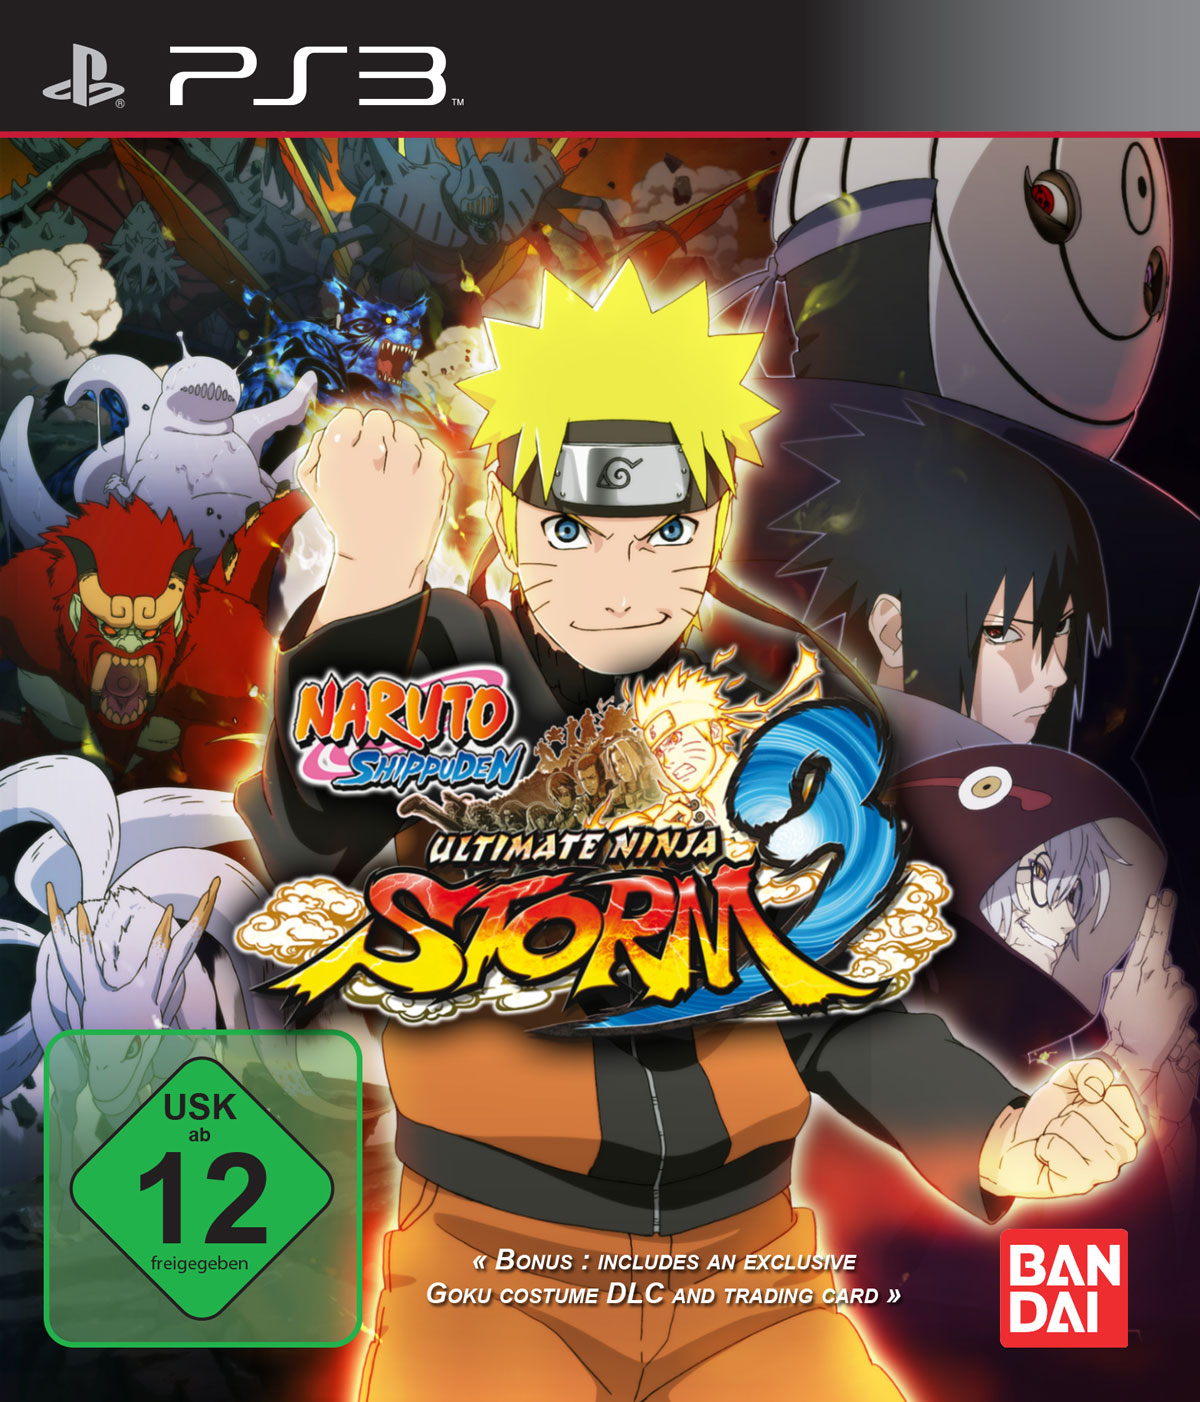 NARUTO Collectible Card Game X 'NARUTO SHIPPUDEN: ULTIMATE NINJA STORM 3'